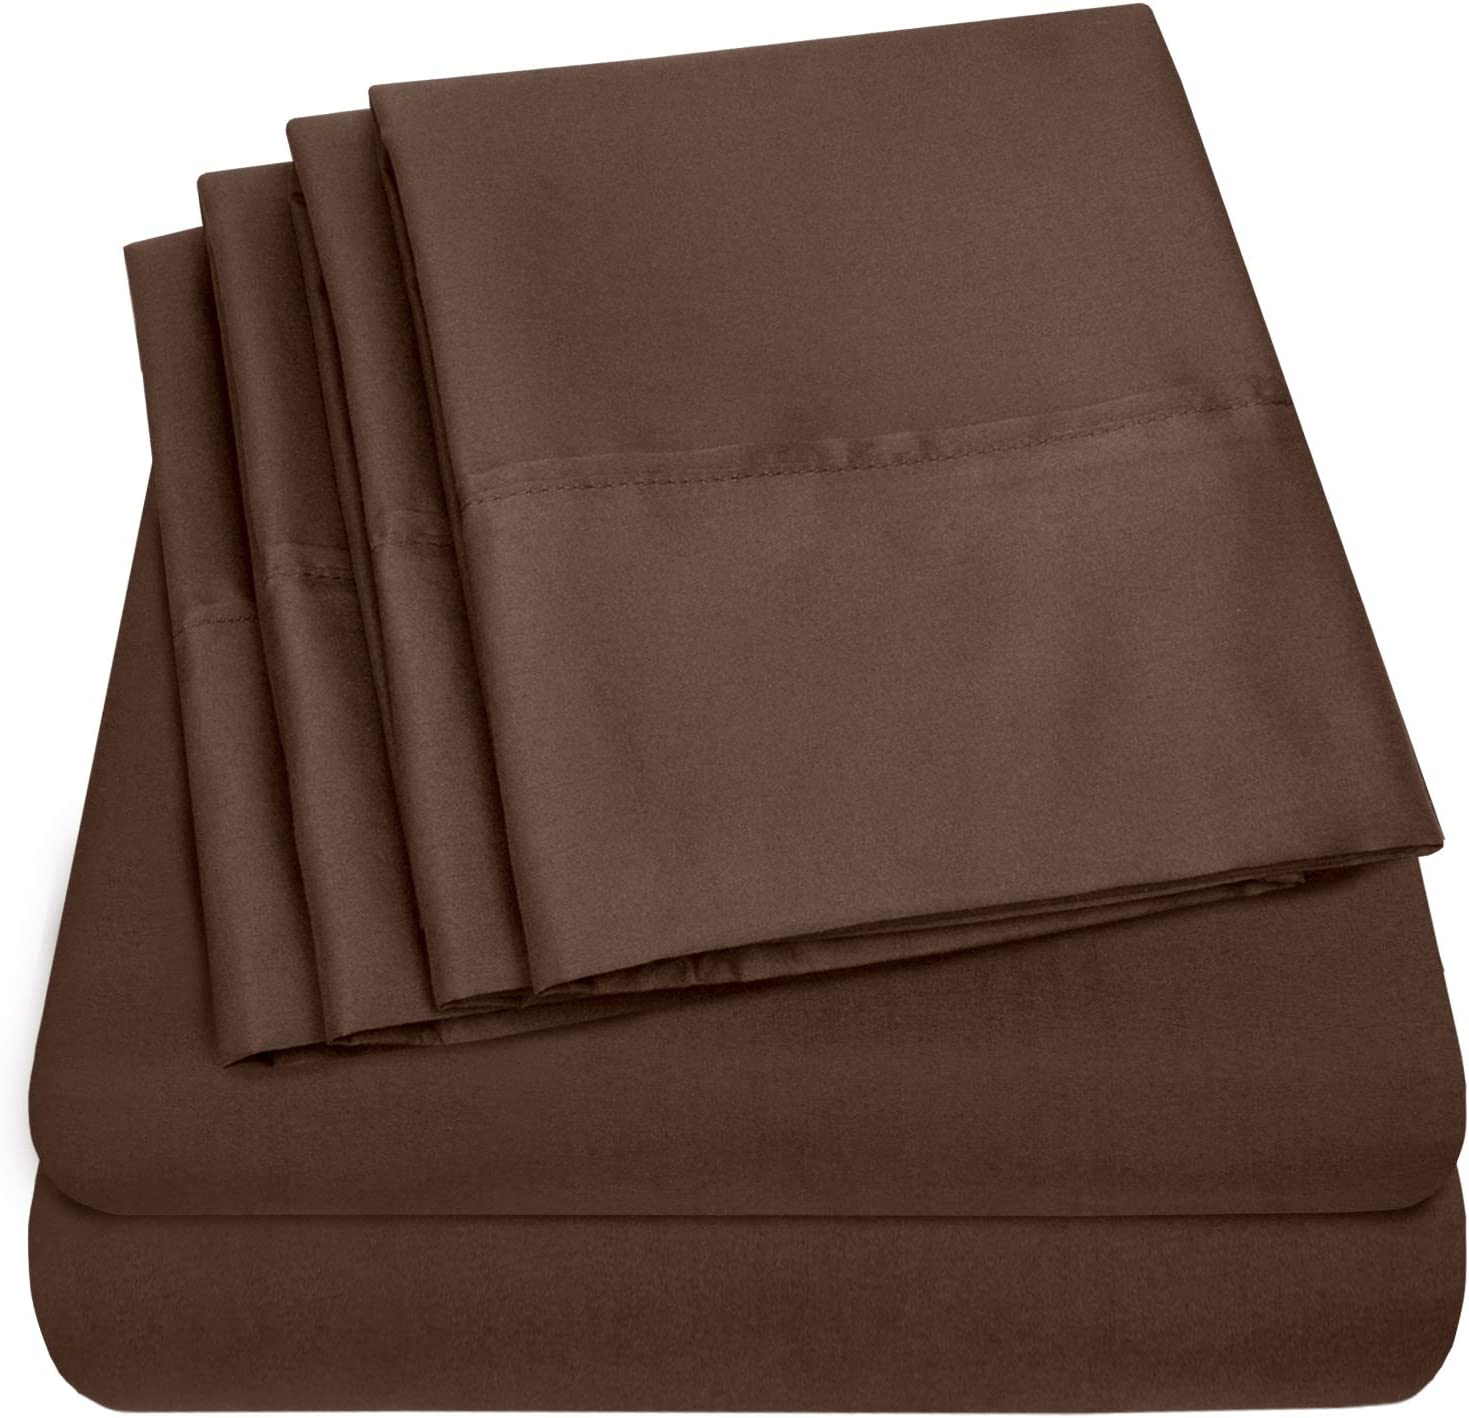 Sweet Home Collection 6 Piece Bed Sheets 1500 Thread Count Fine Microfiber Deep Pocket Set-EXTRA PILLOW CASES, VALUE, Twin, Brown